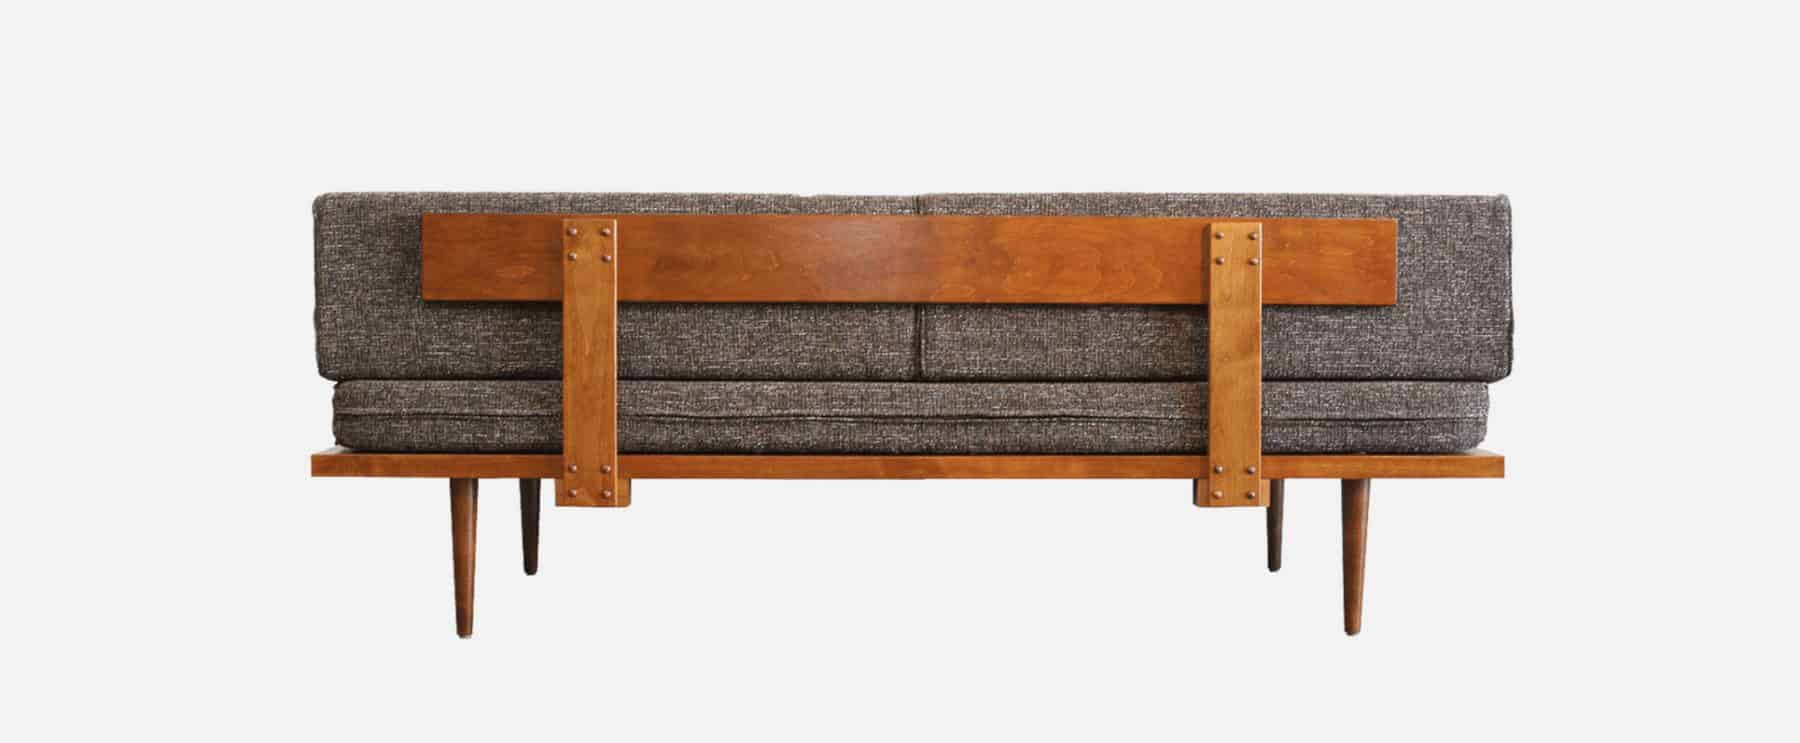 Stupendous Mid Century Modern Daybed Sofa Mcm Daybed Handmade In Alphanode Cool Chair Designs And Ideas Alphanodeonline